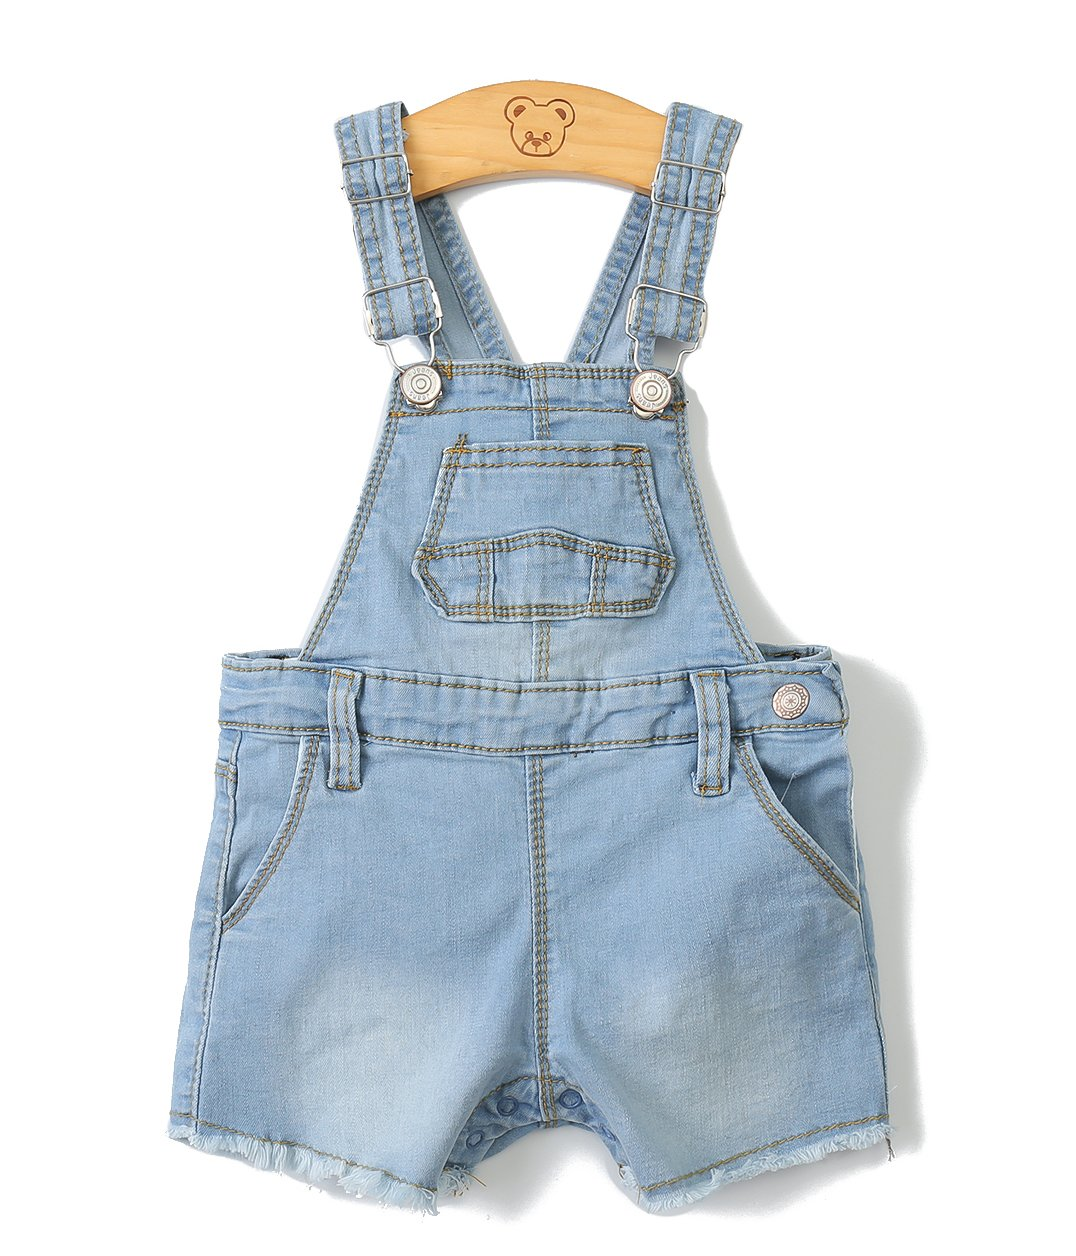 Baby Girls/Boys Big Bibs Raw Edge Light Blue Summer Jeans Shortalls,Light Blue,2-3 Years